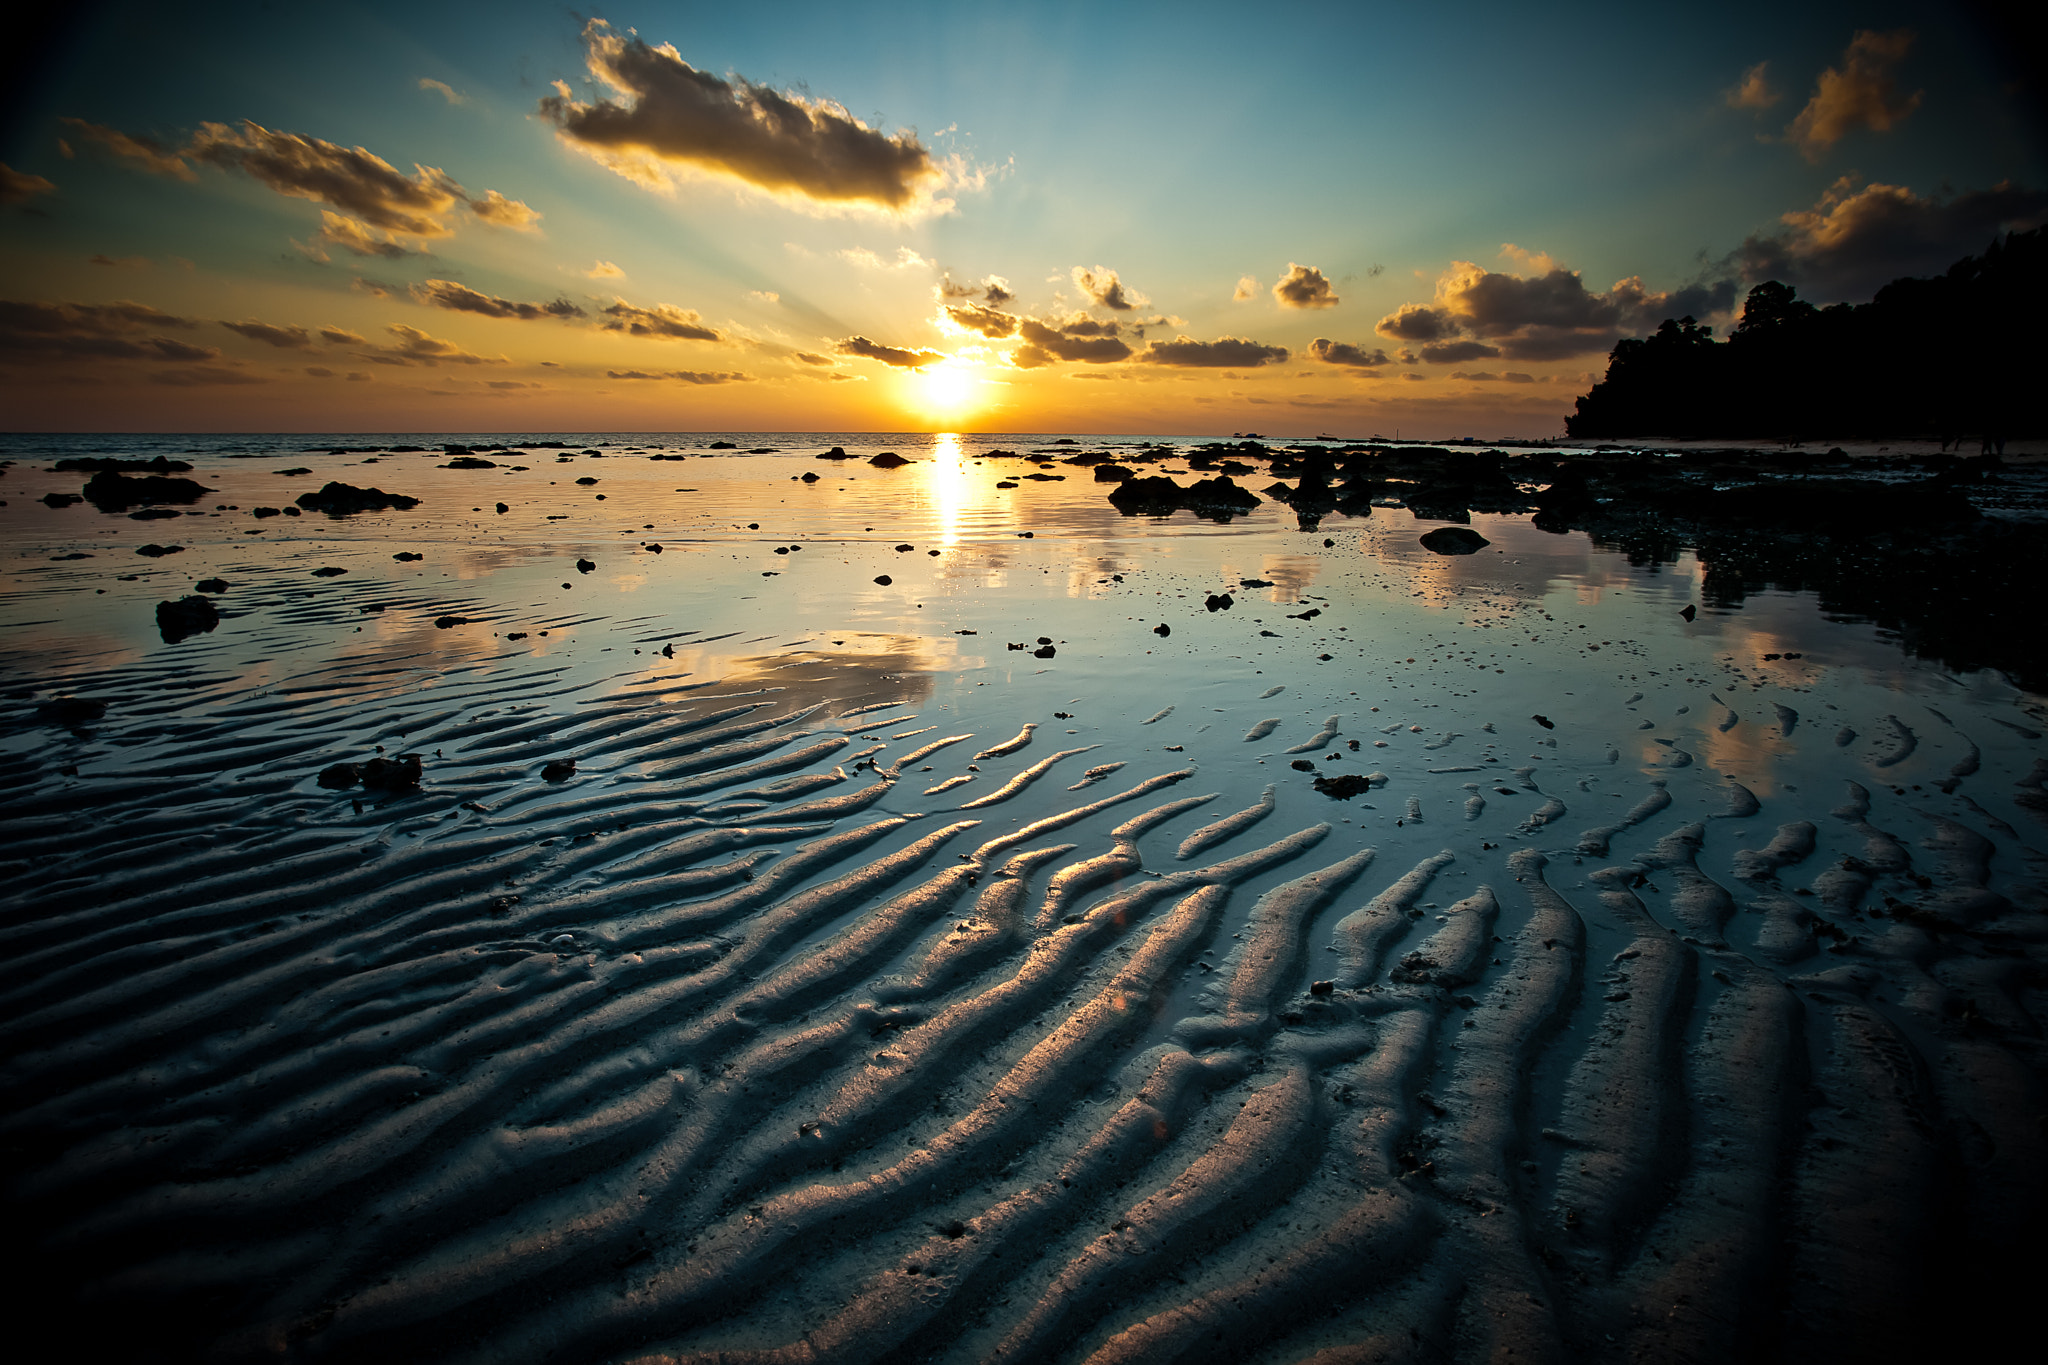 Photograph Sunrise at Beach #5 by Paul Bellinger on 500px